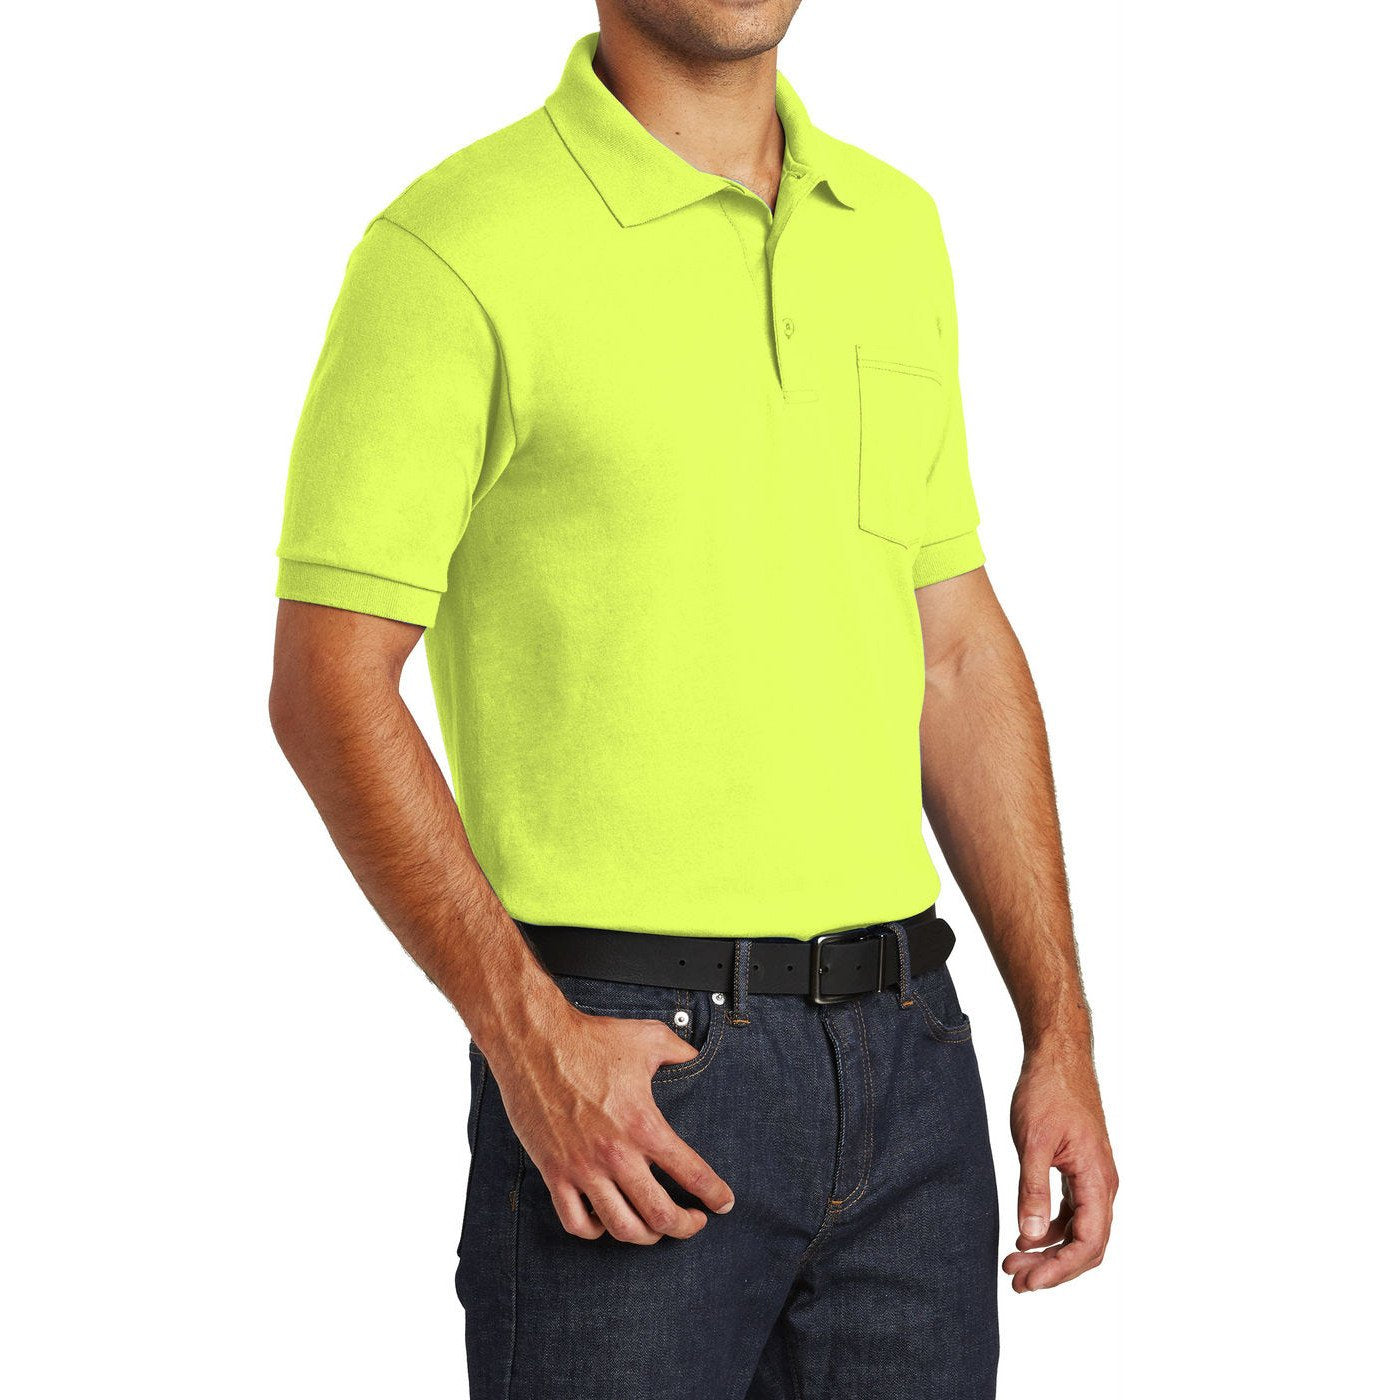 Mafoose Men's Core Blend Jersey Knit Pocket Polo Shirt Safety Green